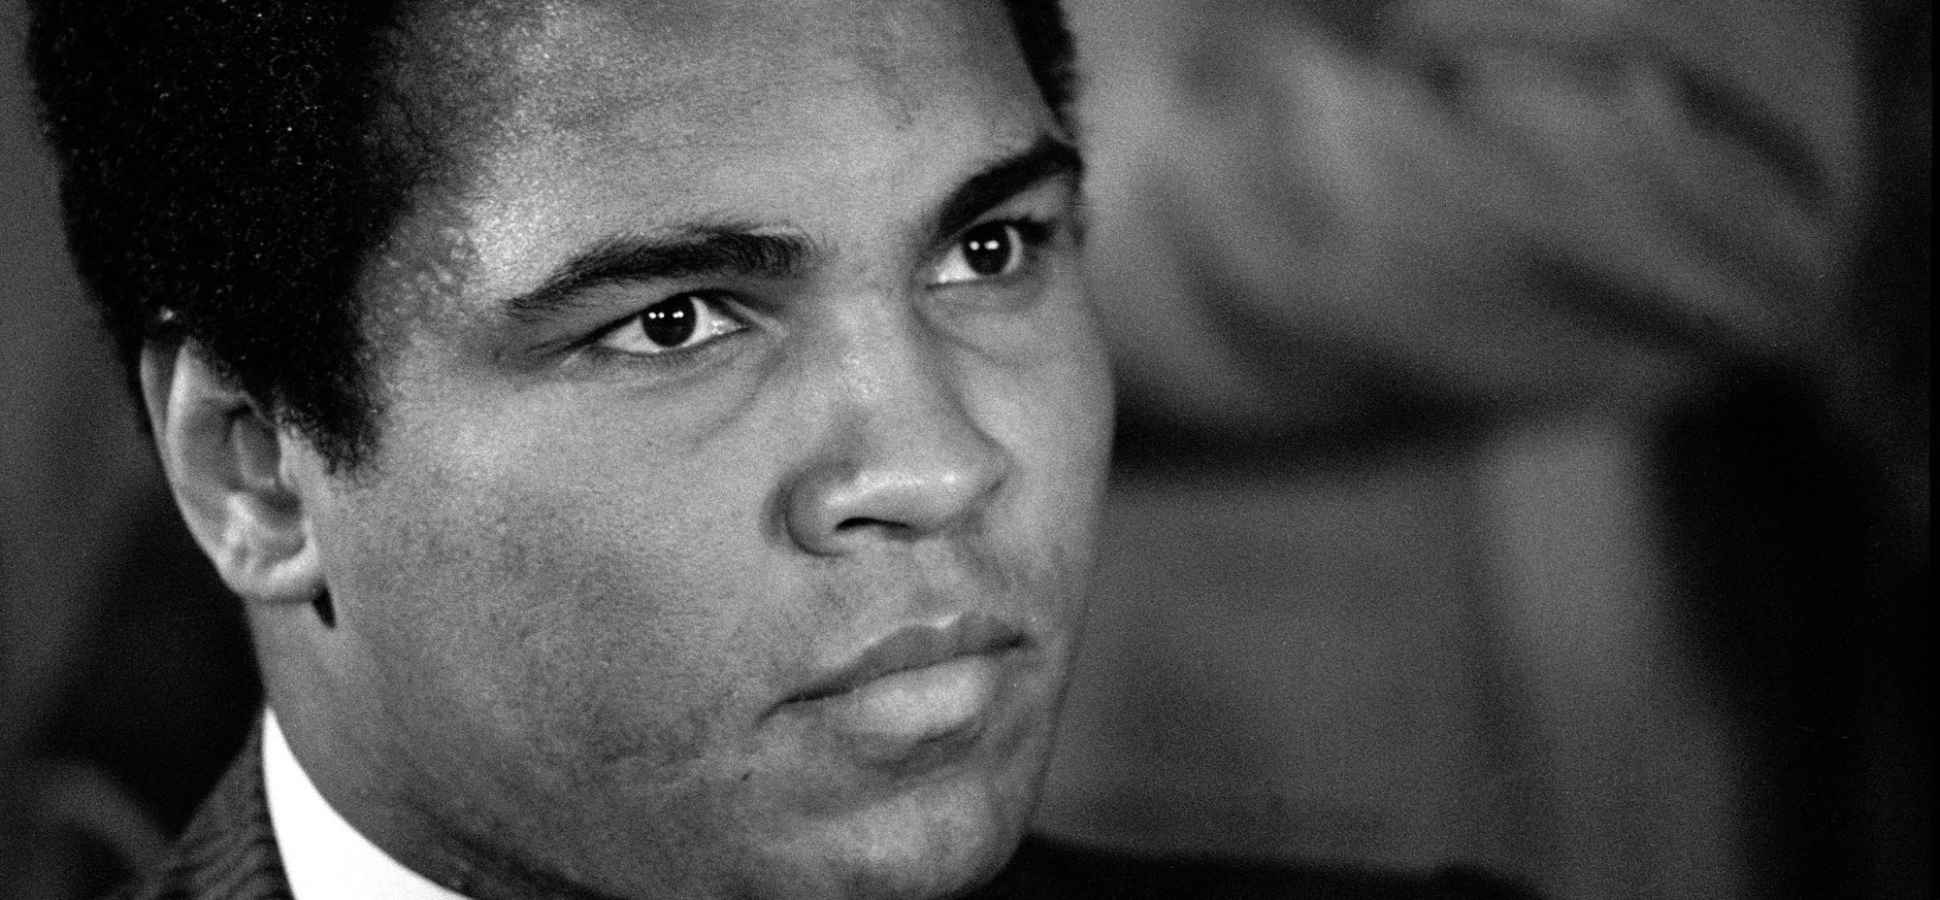 Muhammad Ali: 50 Inspiring Thoughts From the Greatest of All Time